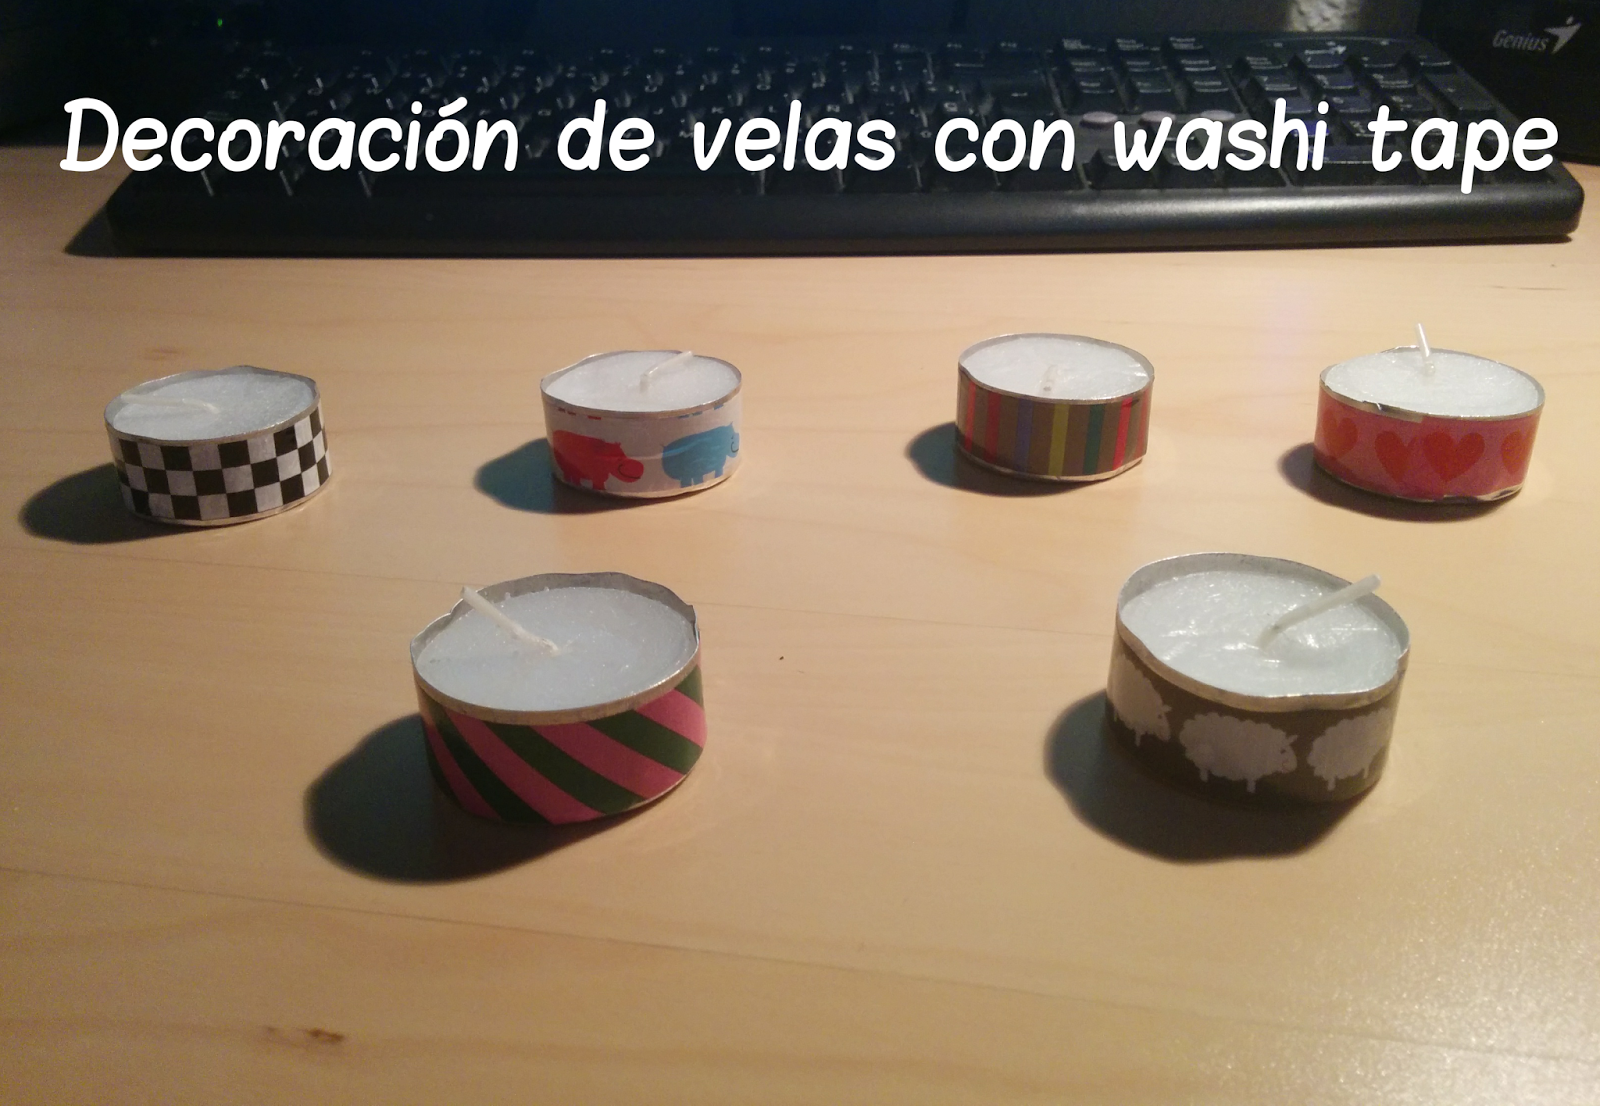 Ideas Para Decorar Con Washi Tape Decoración De Velas Con Washi Tape Candles Decoration